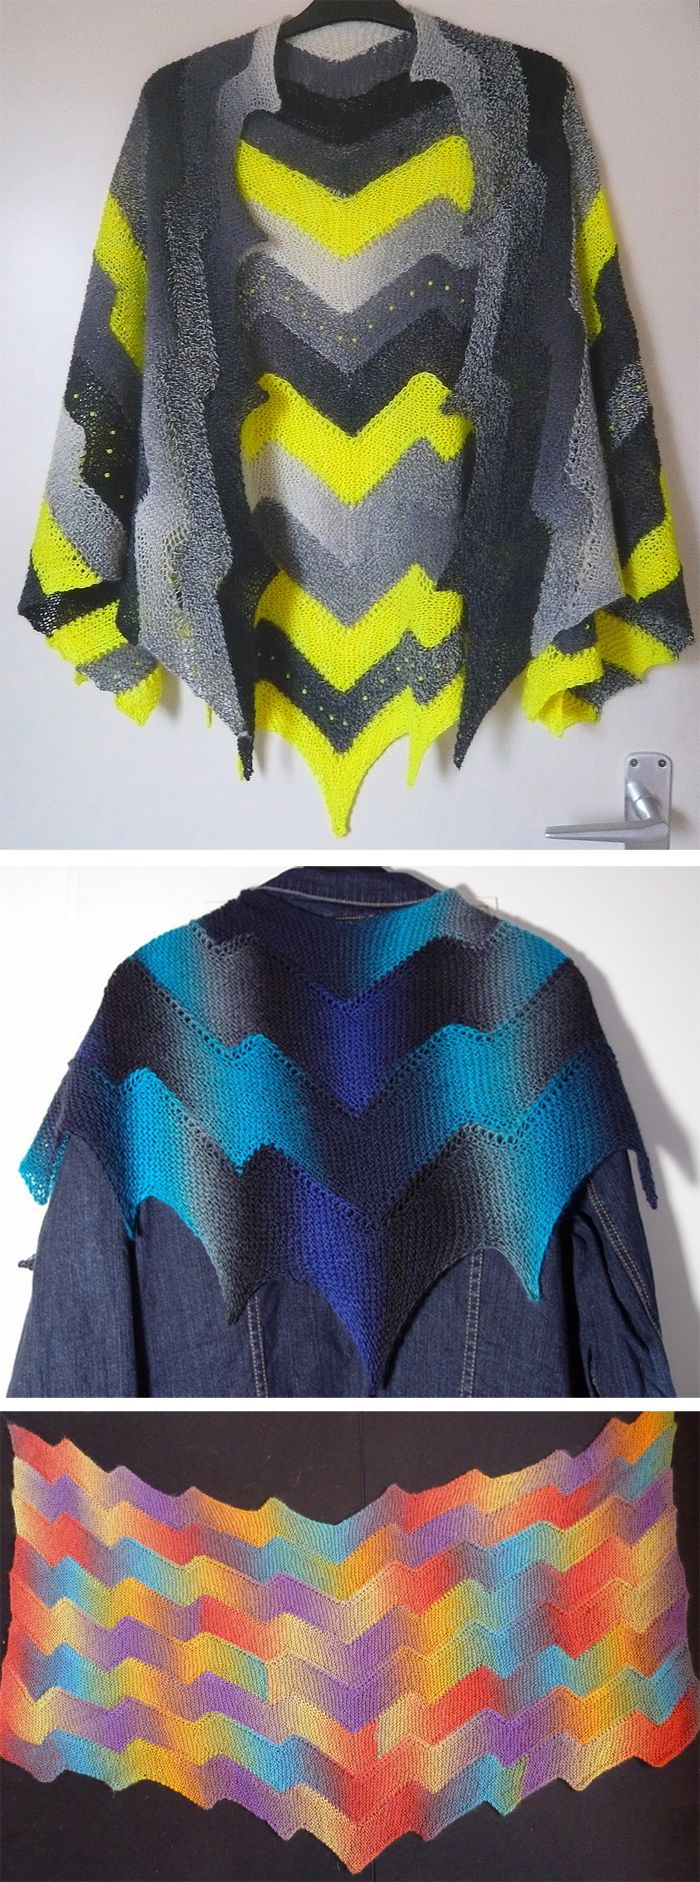 Free Knitting Pattern for Lightning Shawl - The Lightning Shawl uses Frankie Brown's Ten Stitch Zigzag pattern. Garter stitch strips are shaped into elongated zigzags with regular increases and decreases and then joined on to other strips as you go to make the finished fabric. There is no sewing up and the shawl could be knitted in any yarn. Pictured projects byannalist,maryaustria, andmiriamsdottir